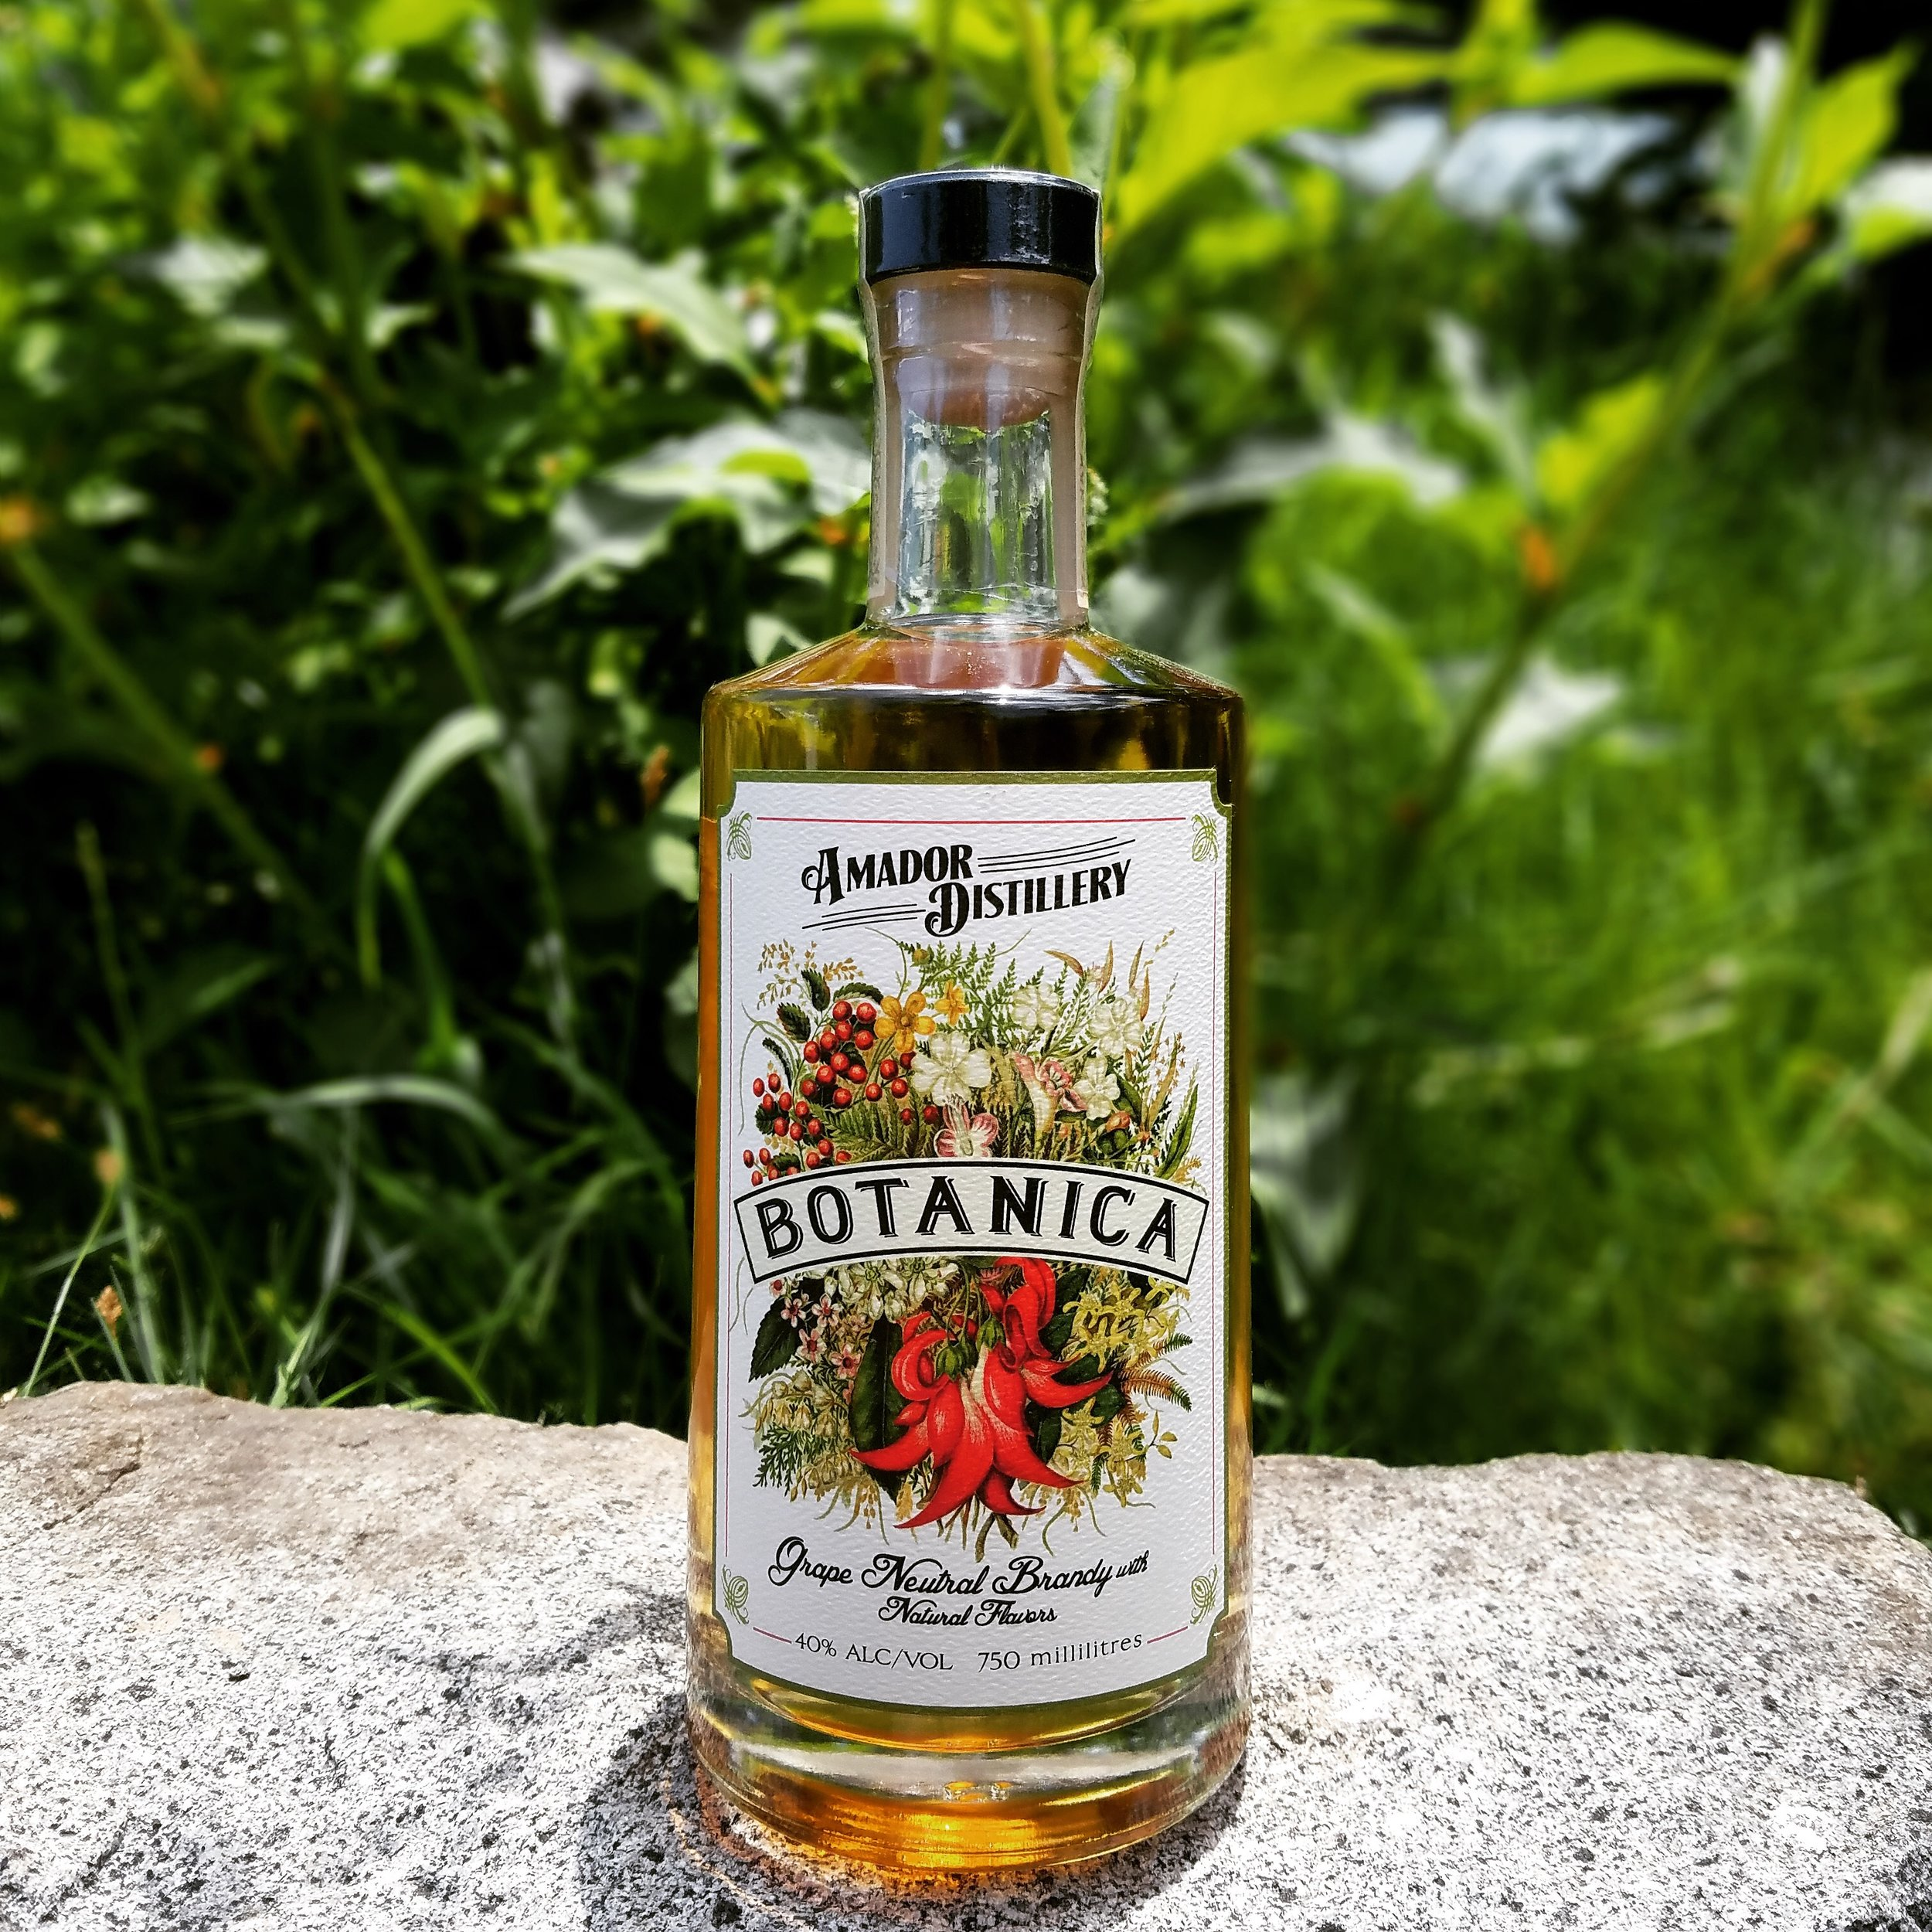 Botanica - This product grew out of our tasting room that was located in Sutter Creek. We could only sell brandy products, so we developed a